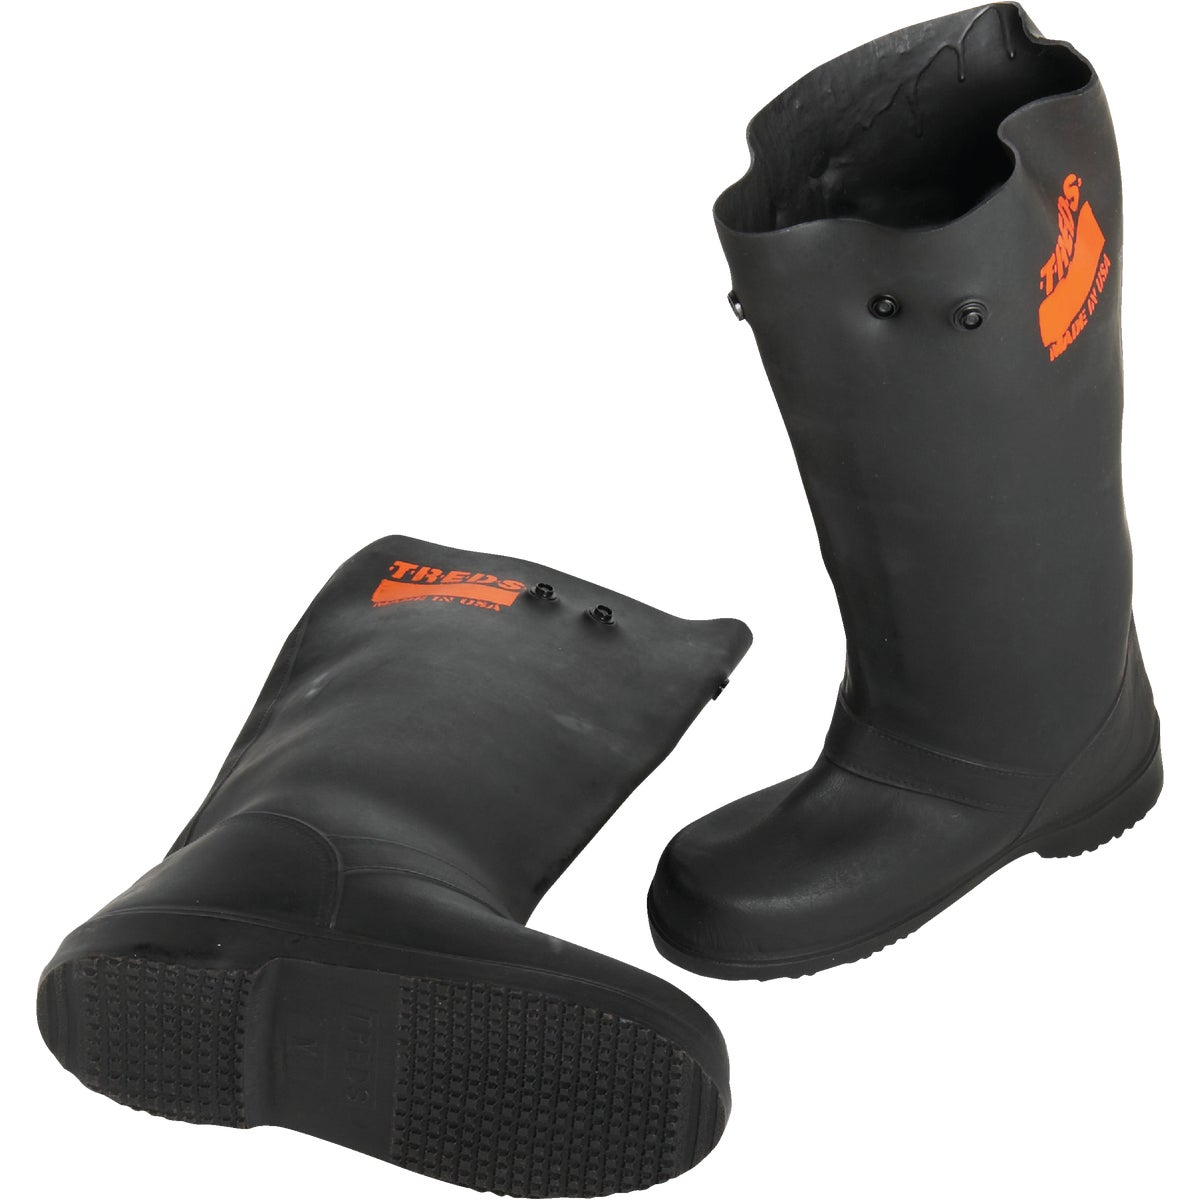 "17"" LRG TREDS RUBBR BOOT - 17852 by Advantage Prod Treds"